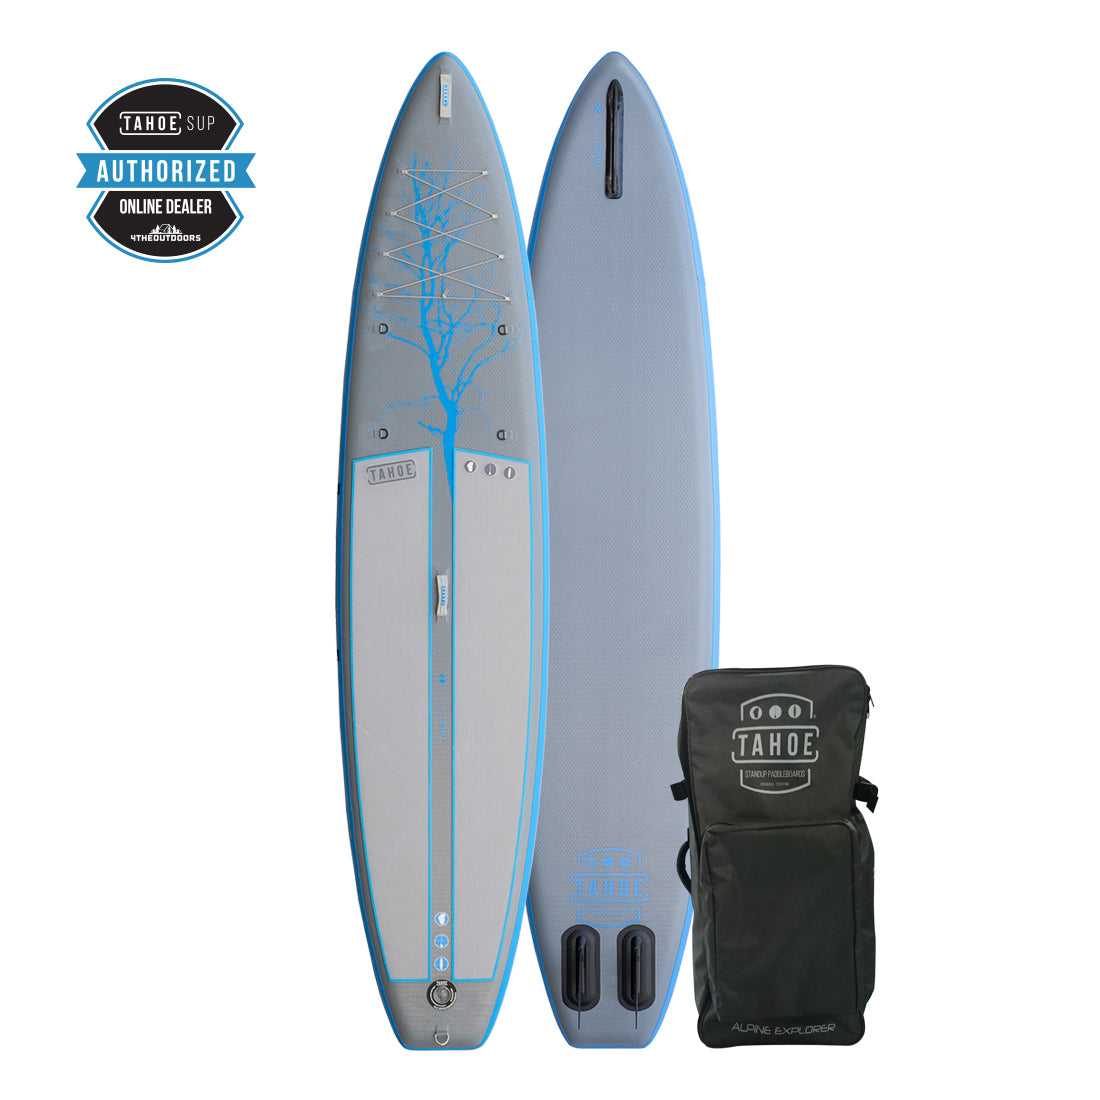 Tahoe iSUP Alpine Explorer - Gray/Blue - Inflatable